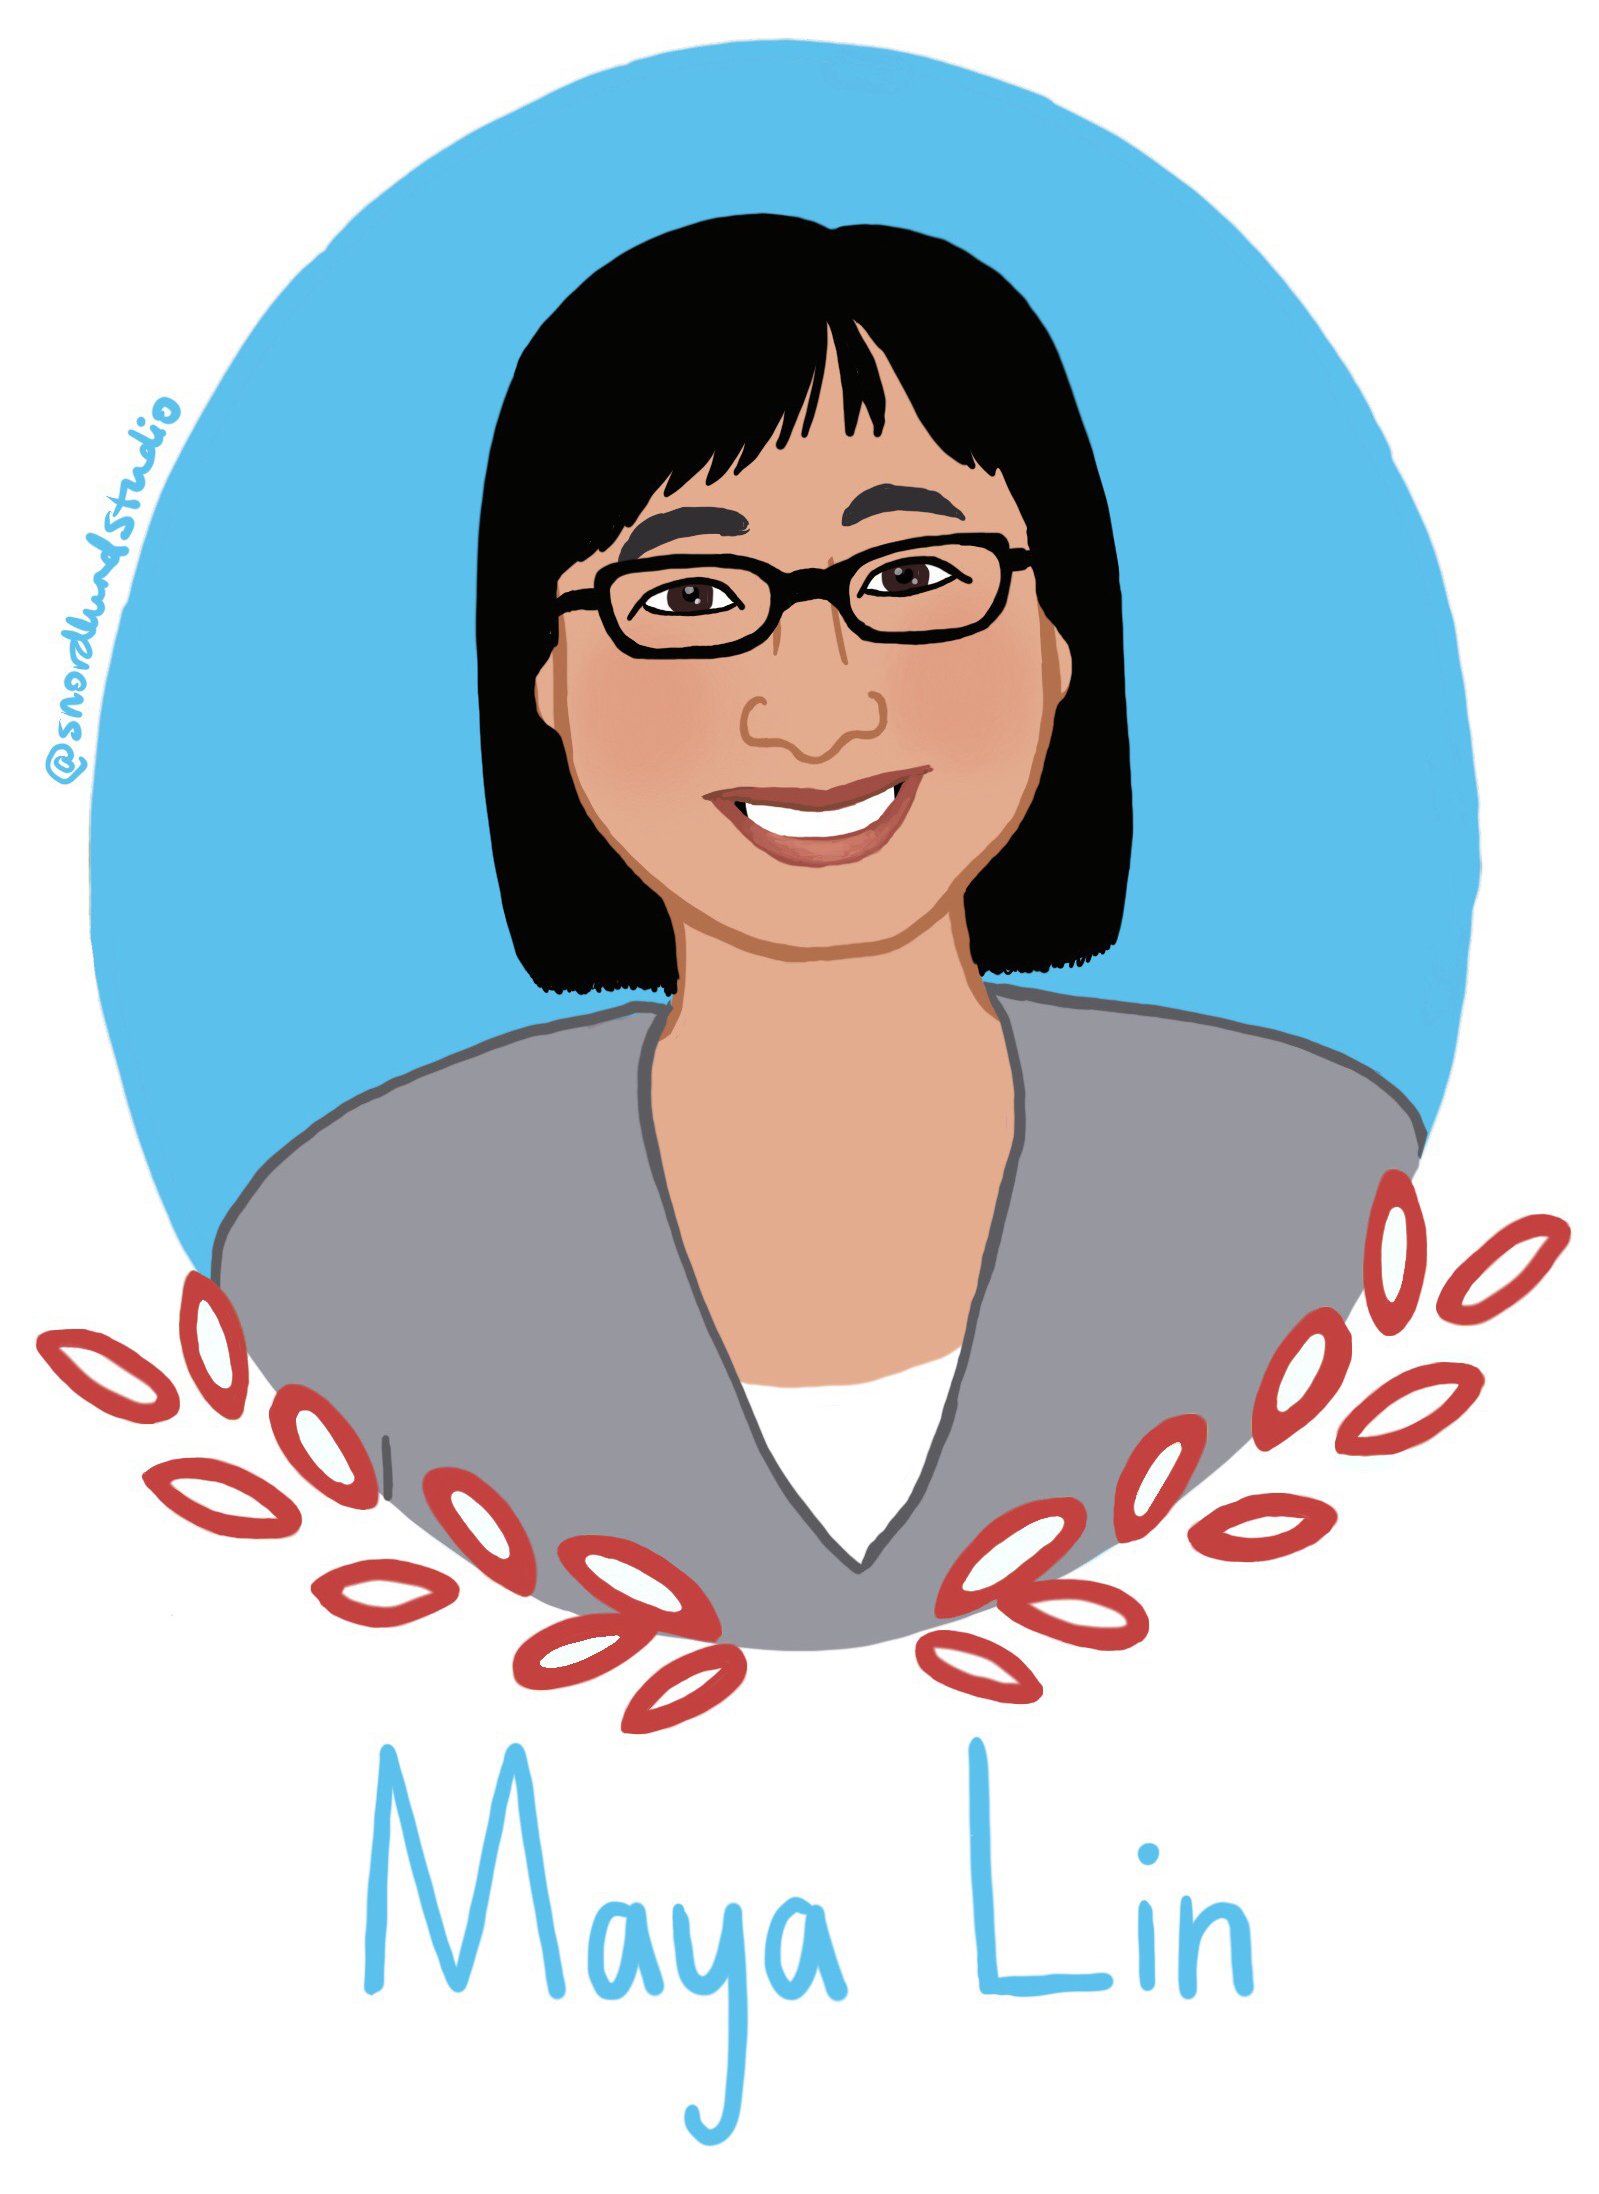 39. Maya Lin - Maya Lin is a designer, architect, and artist.